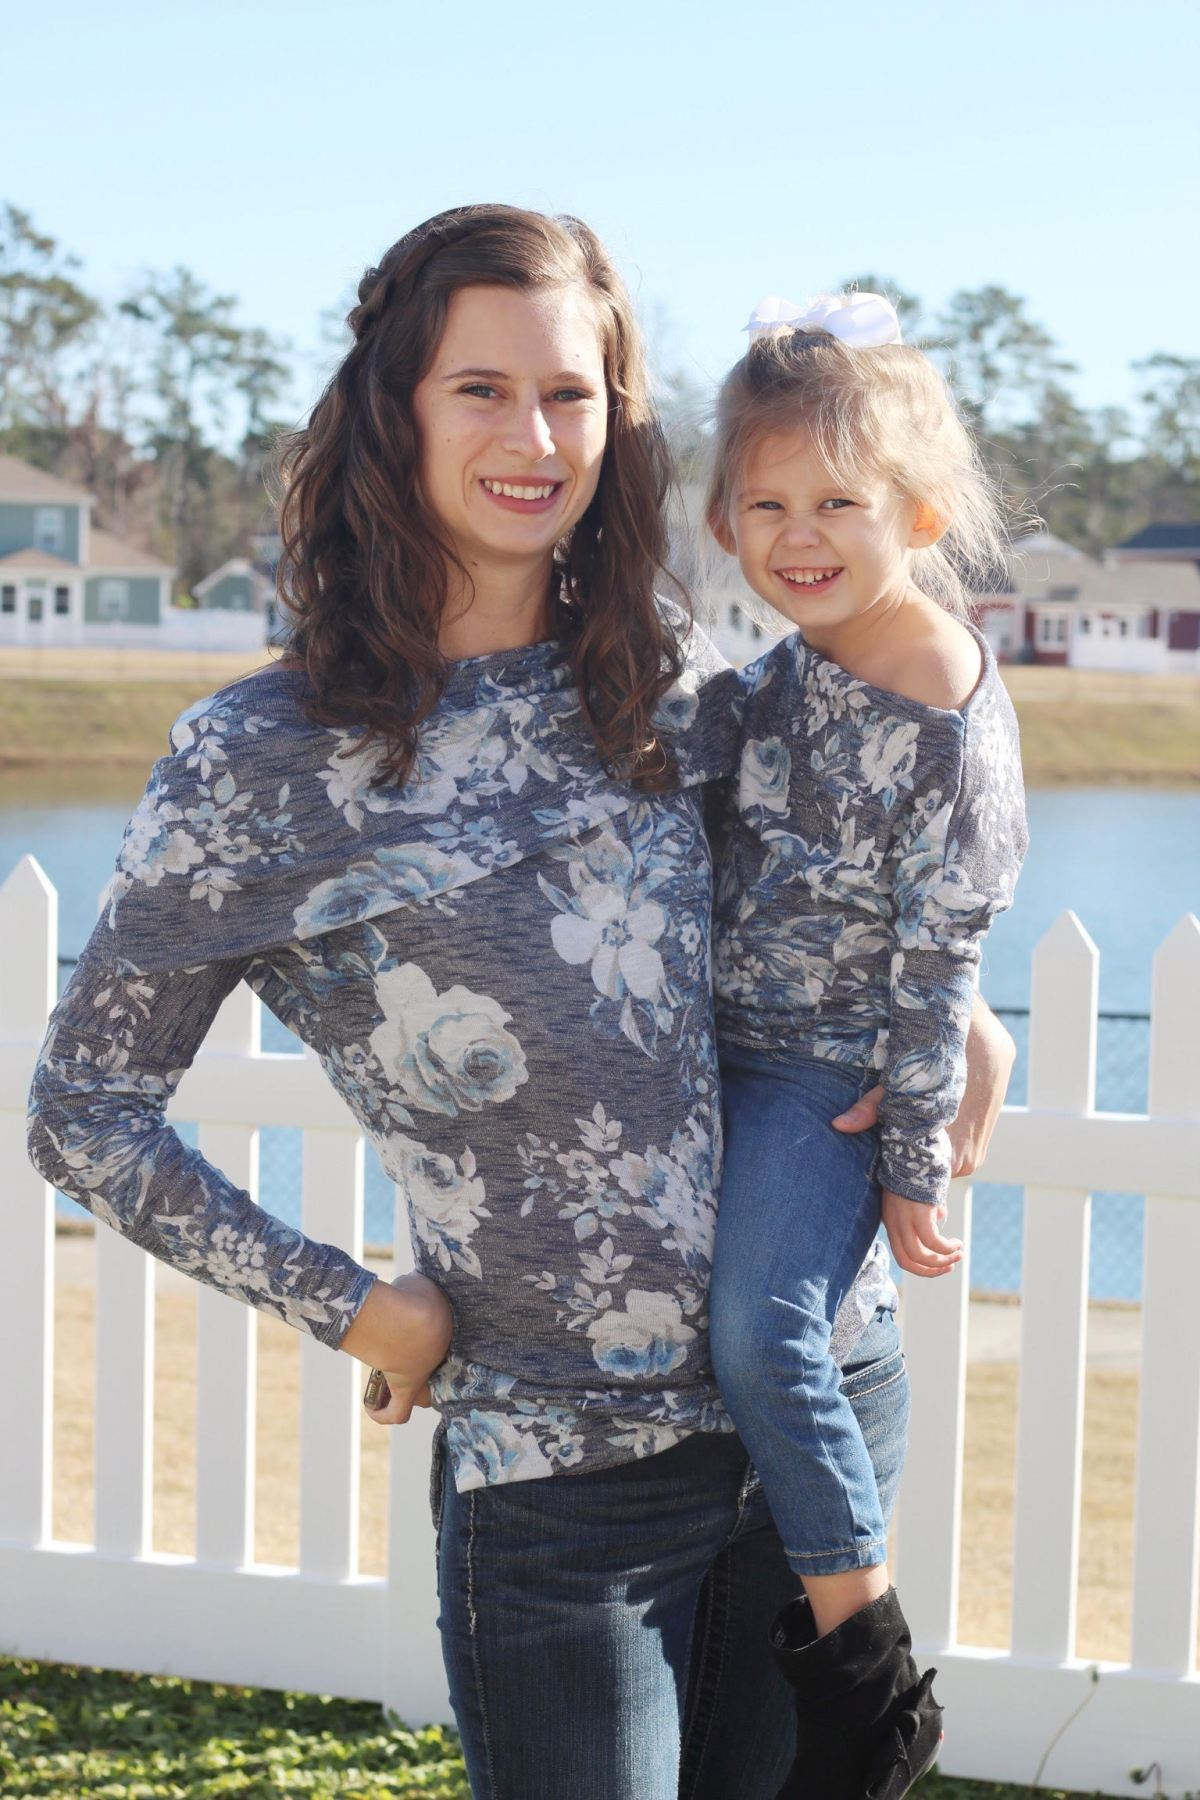 Tiffany, a woman with shoulder-length brown hair, and her daughter pose in front of a white picket fence that surrounds a pond. Tiffany holds her daughter on her left hip as they both smile into the camera. They are wearing matching off-the-shoulder sweaters made from gray fabric with a large-scale white and blue floral motif.